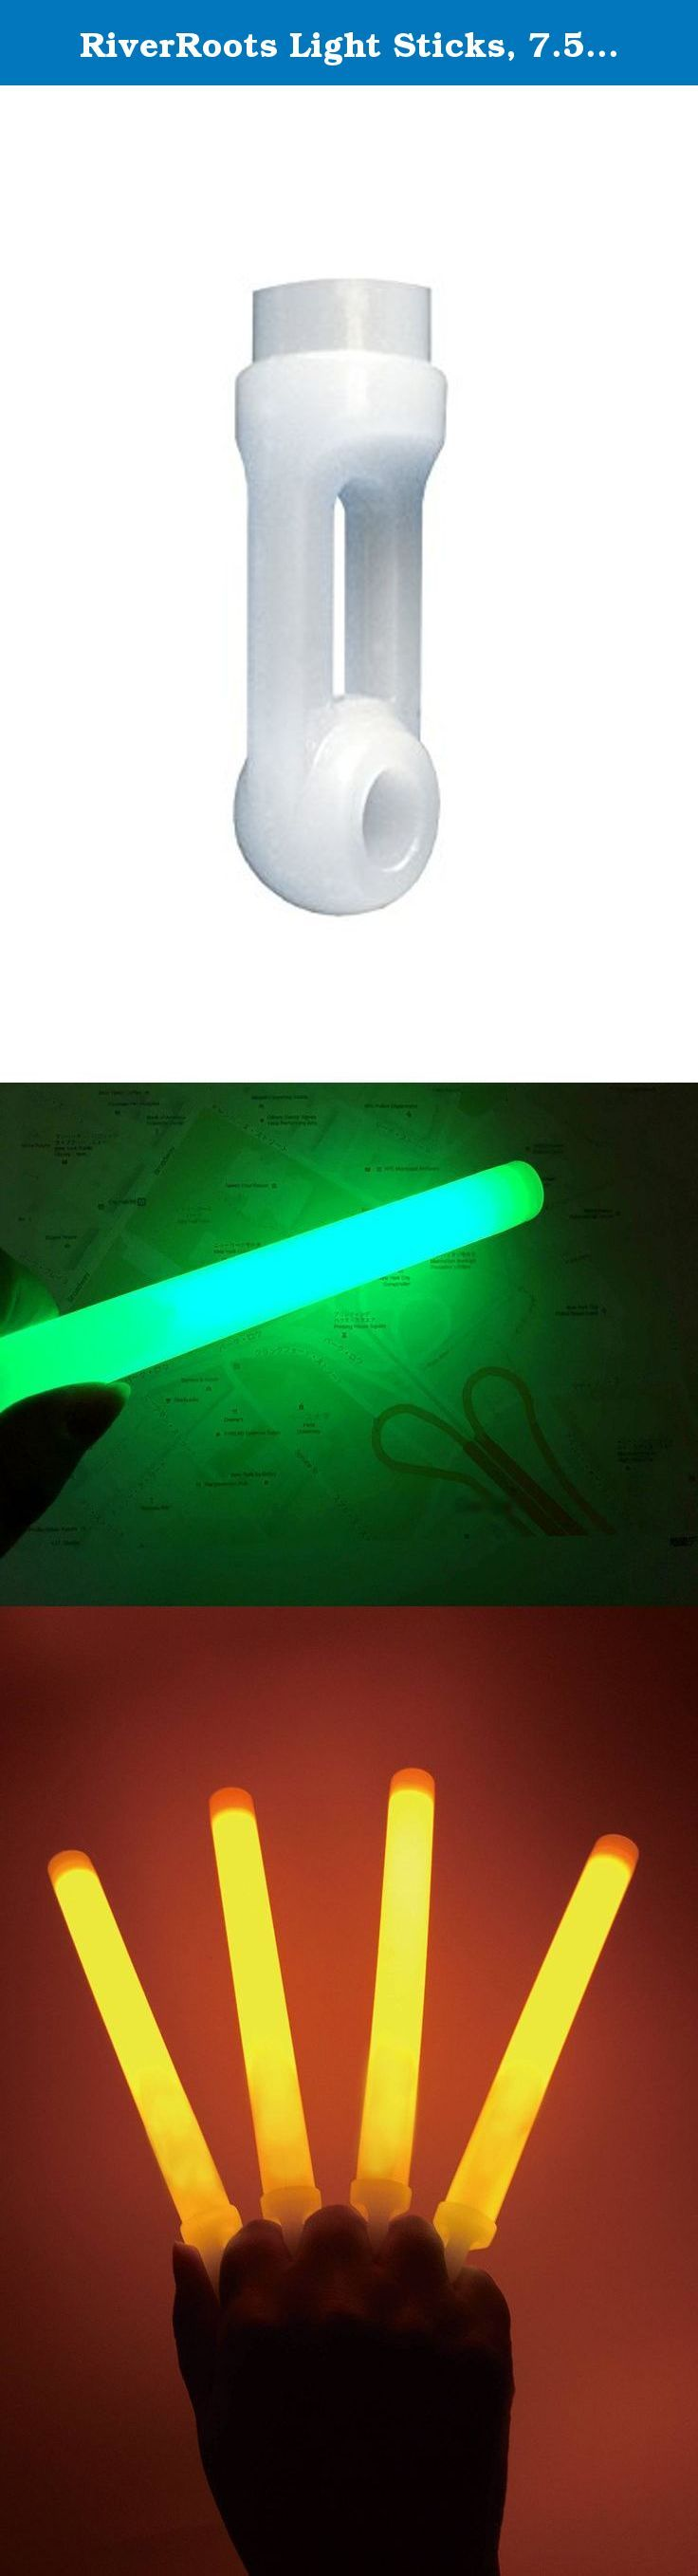 RiverRoots Light Sticks, 7.5In, (25 Pcs). Great for Safety, Halloween, Parties, Bath Tub Fun, Weddings, Bars & More.